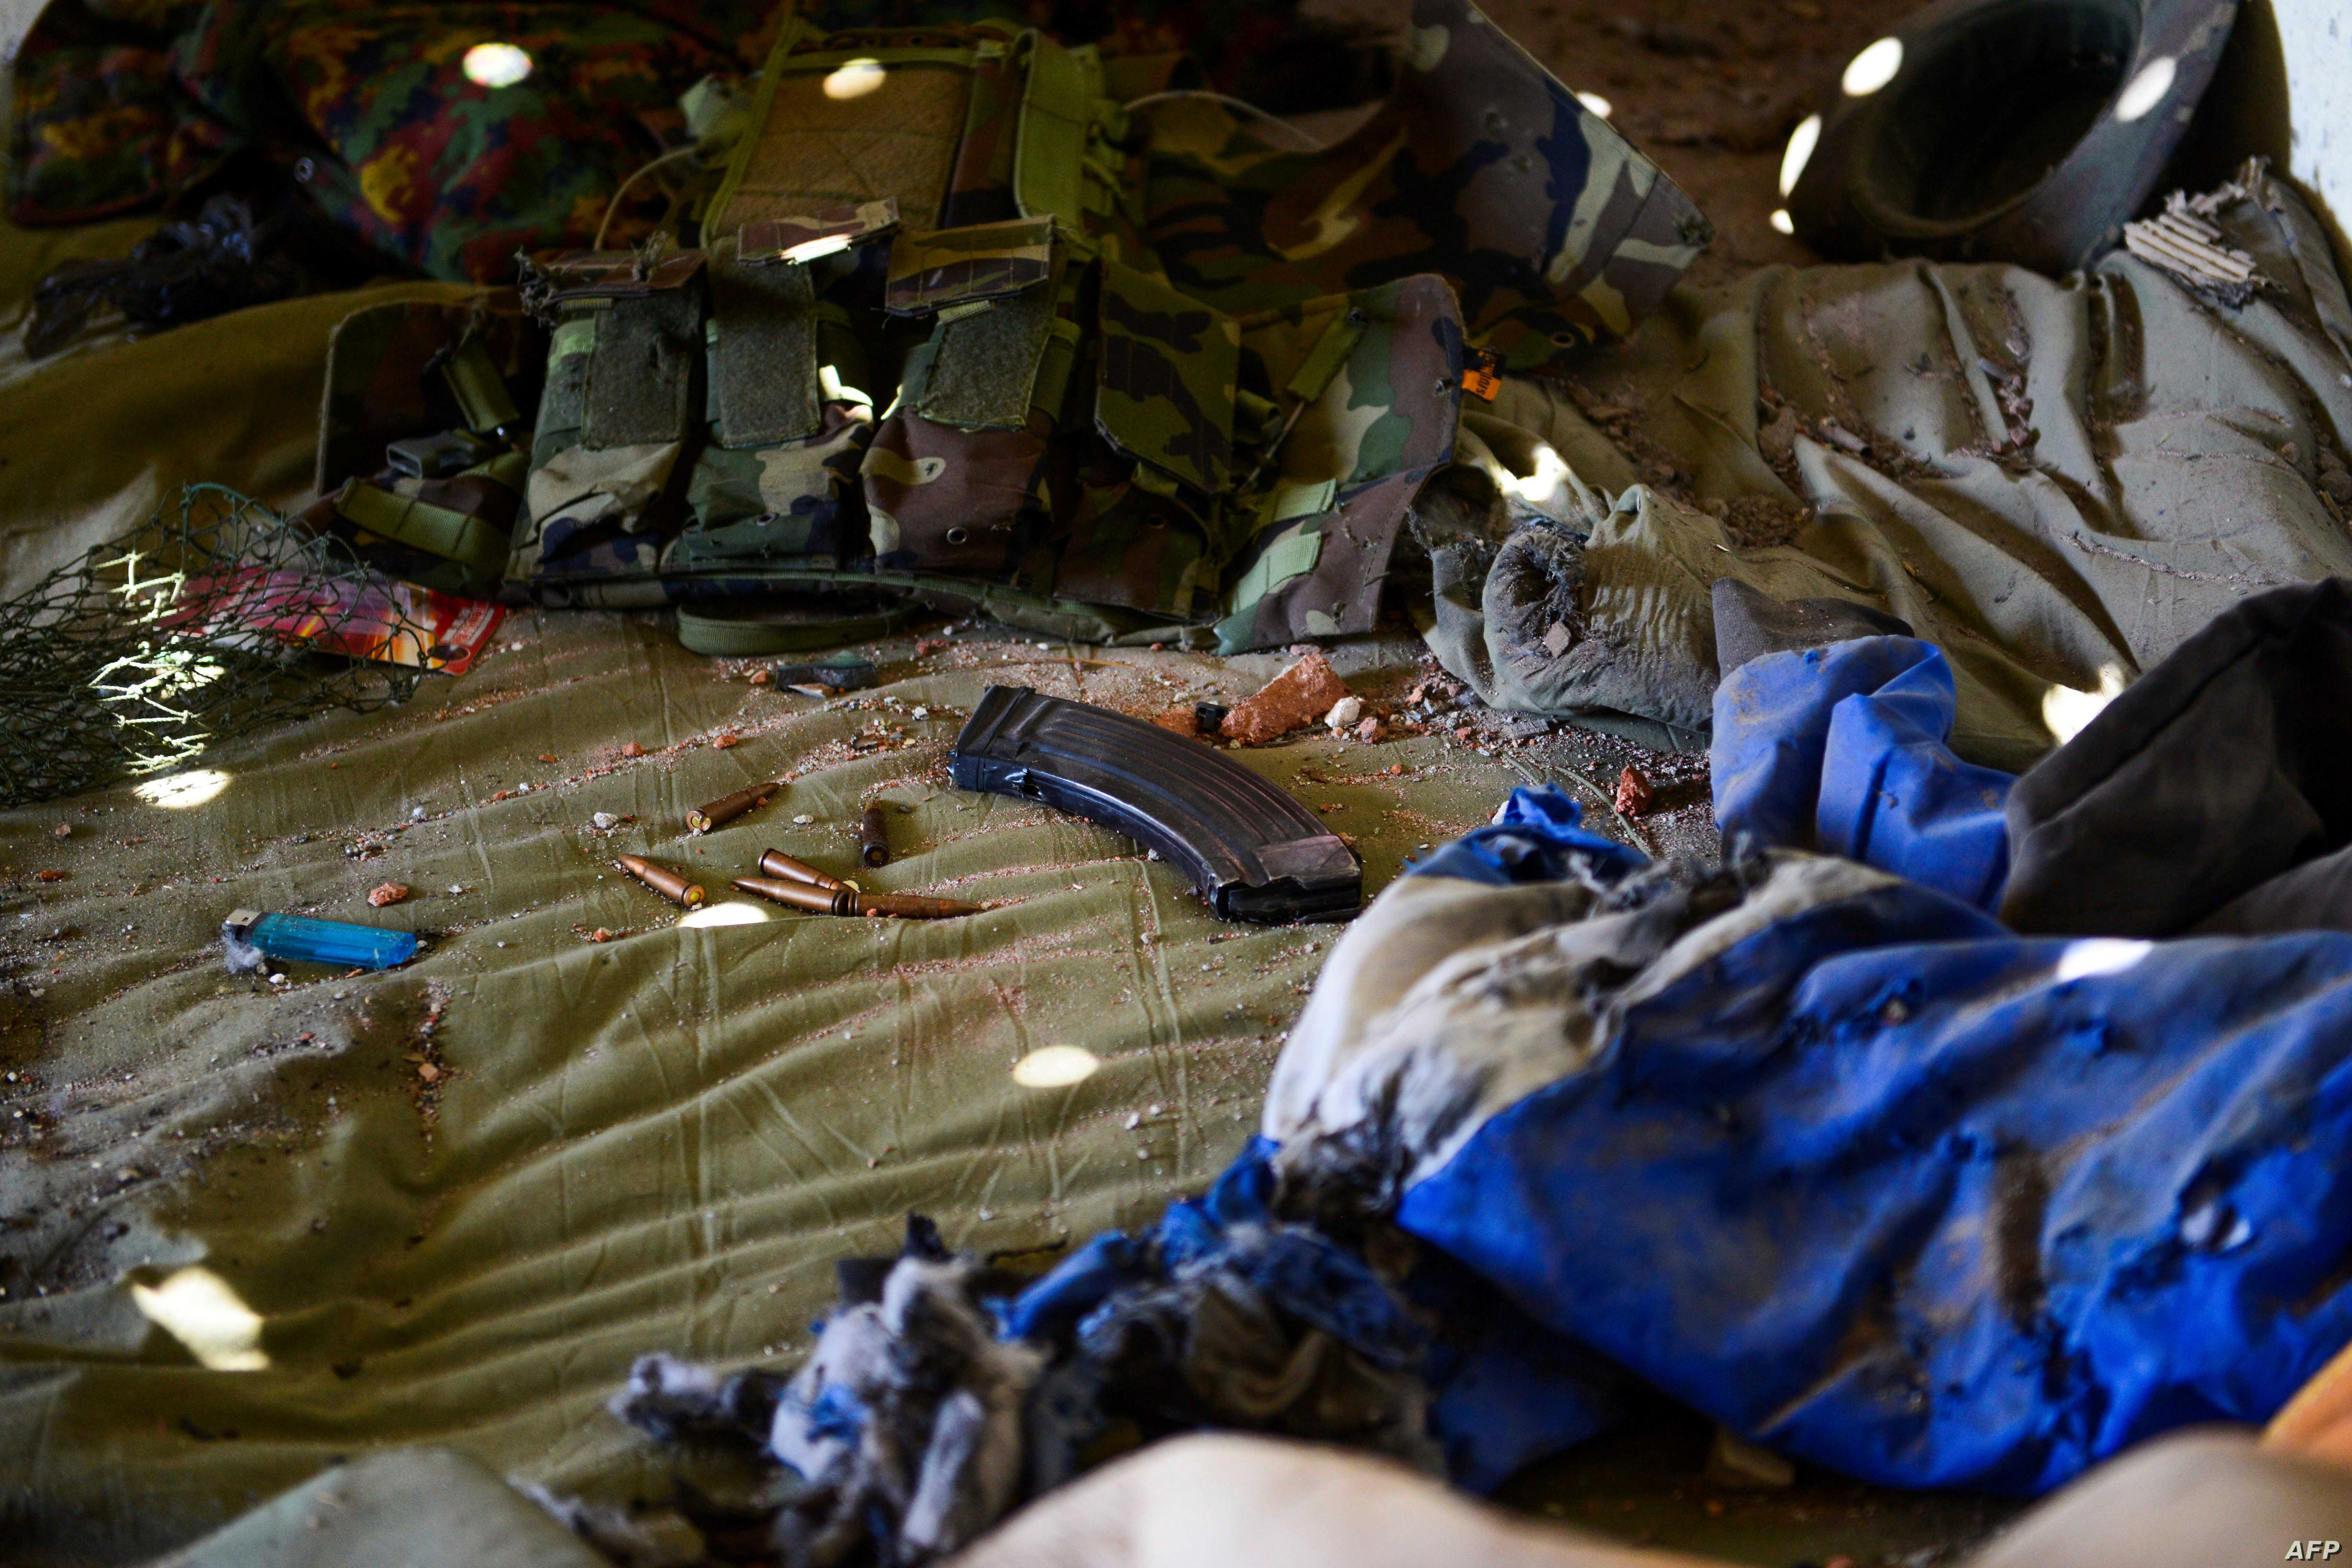 Ammunitions are seen left on a bed inside an army-linked militia post a day after clashes between Myanmar forces and ethnic rebels in Muse, May 13, 2018.